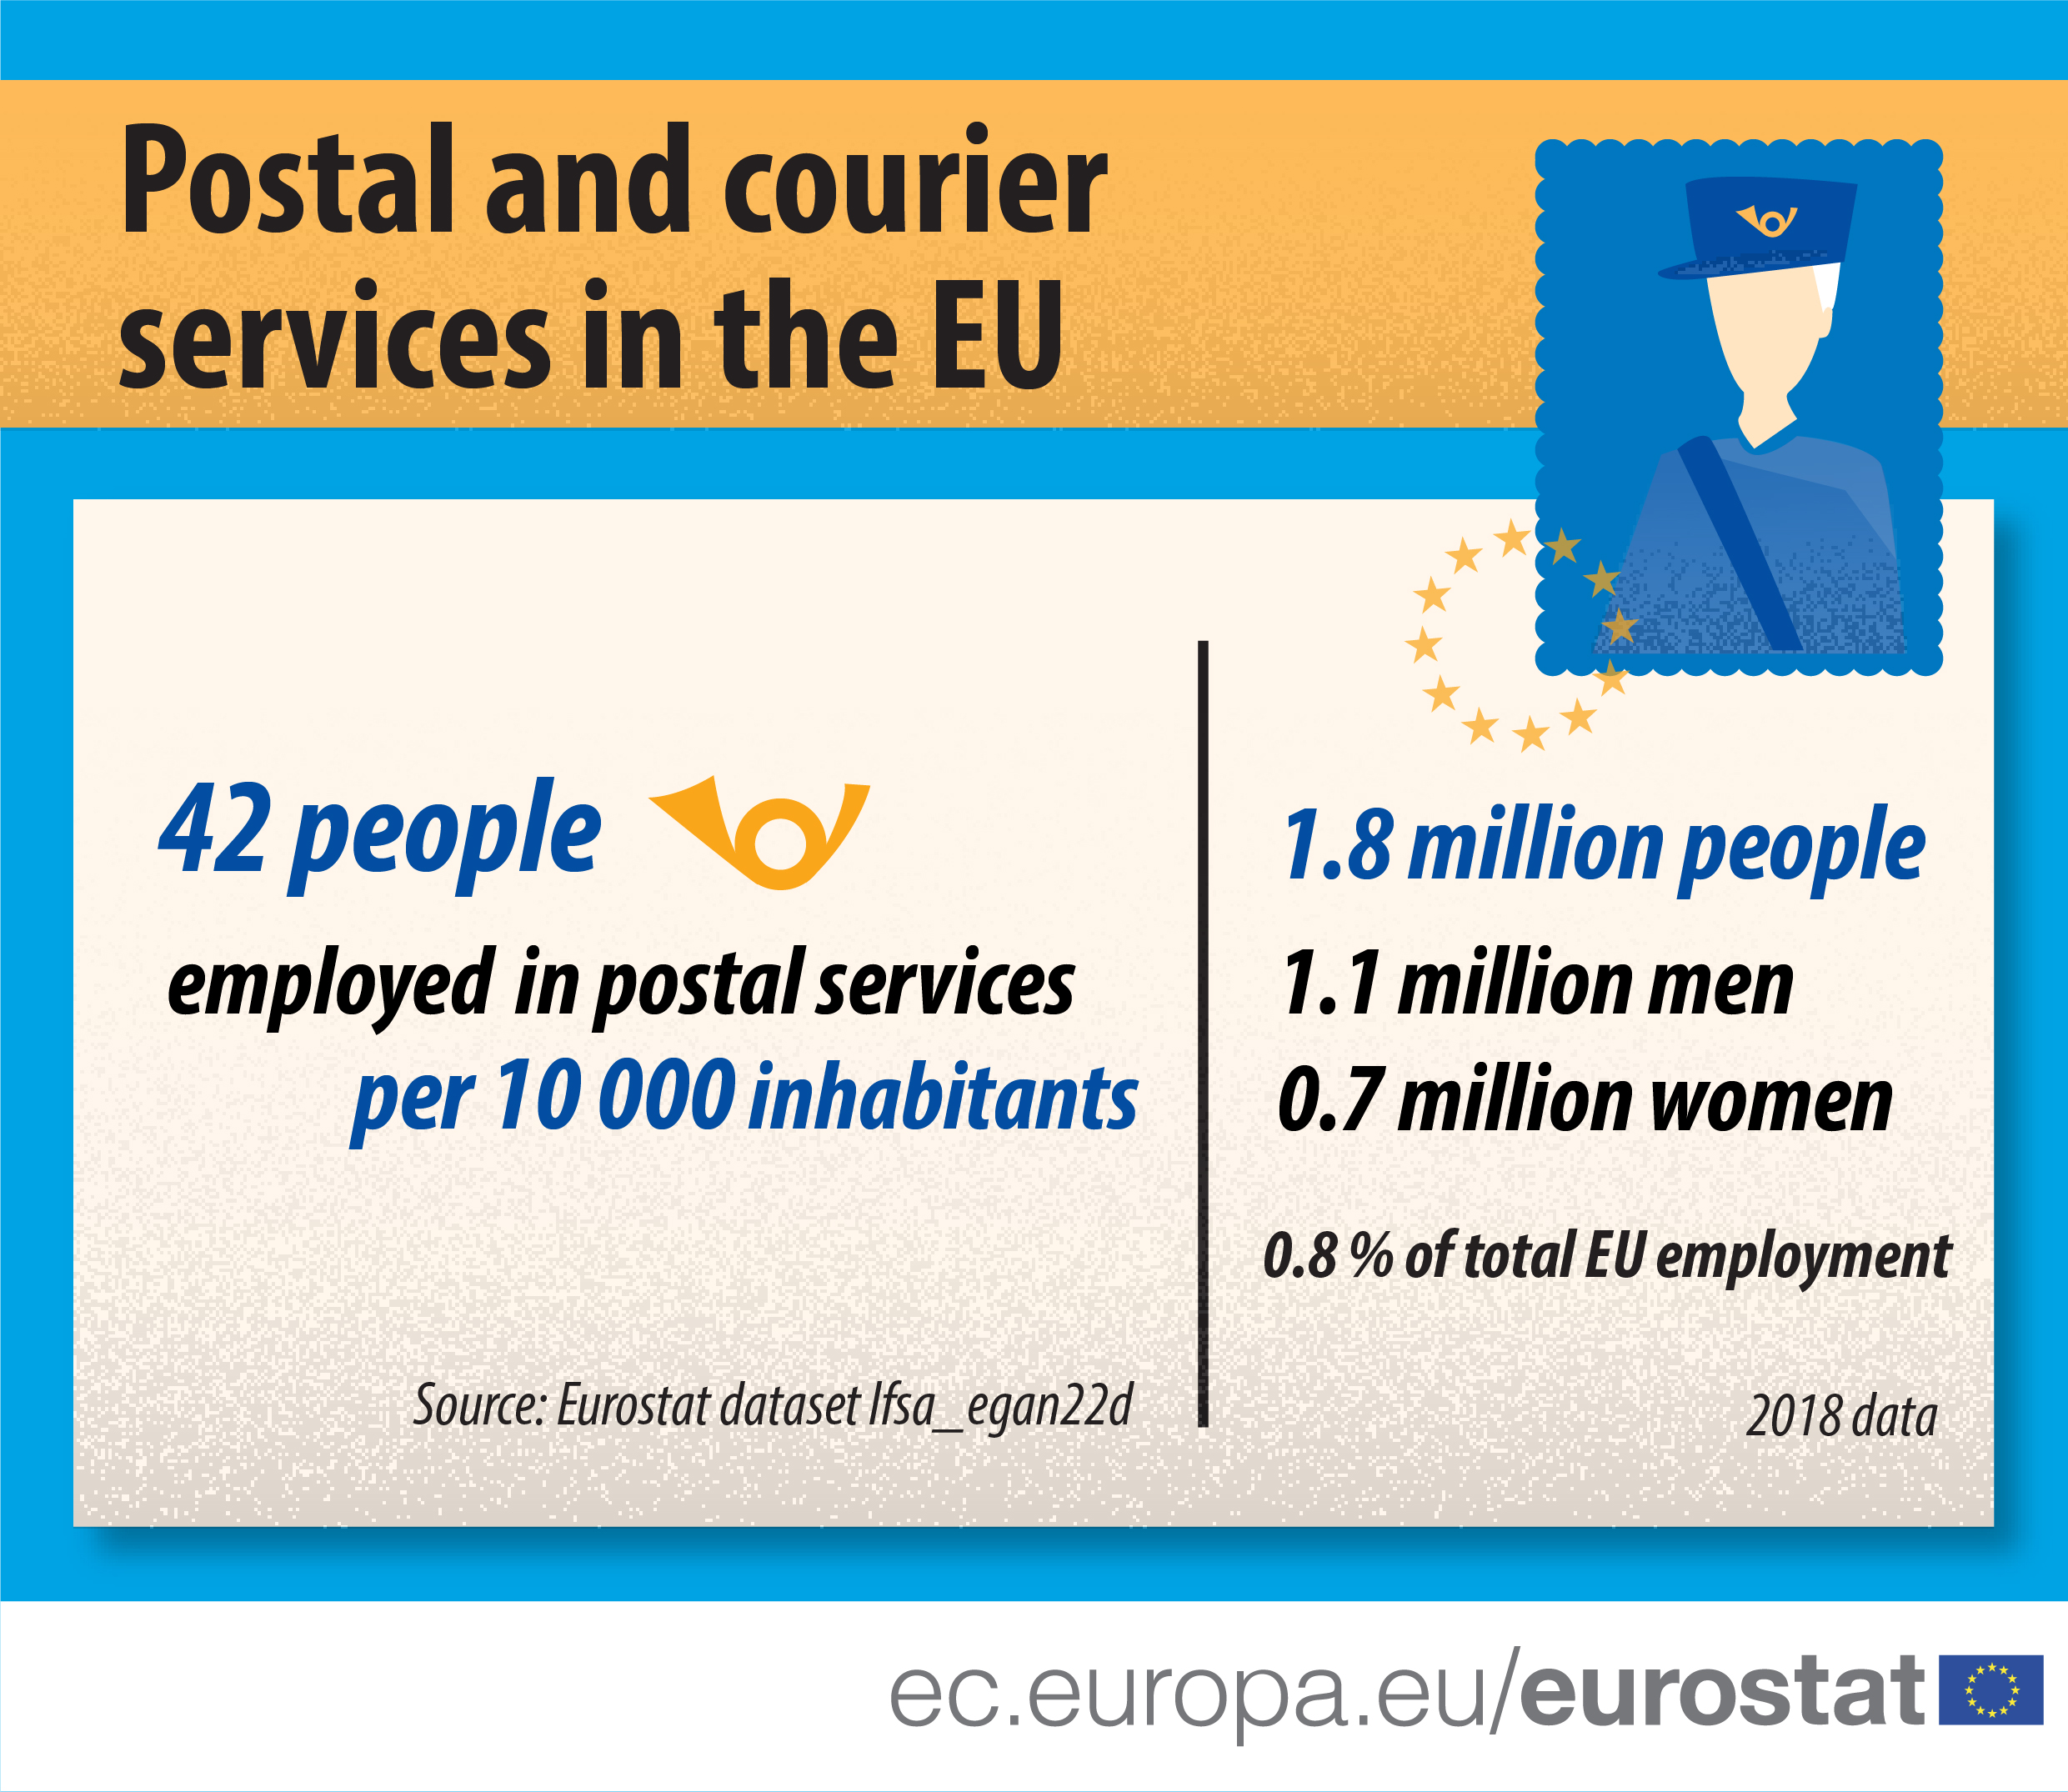 Postal and courrier services in 2018 in the EU